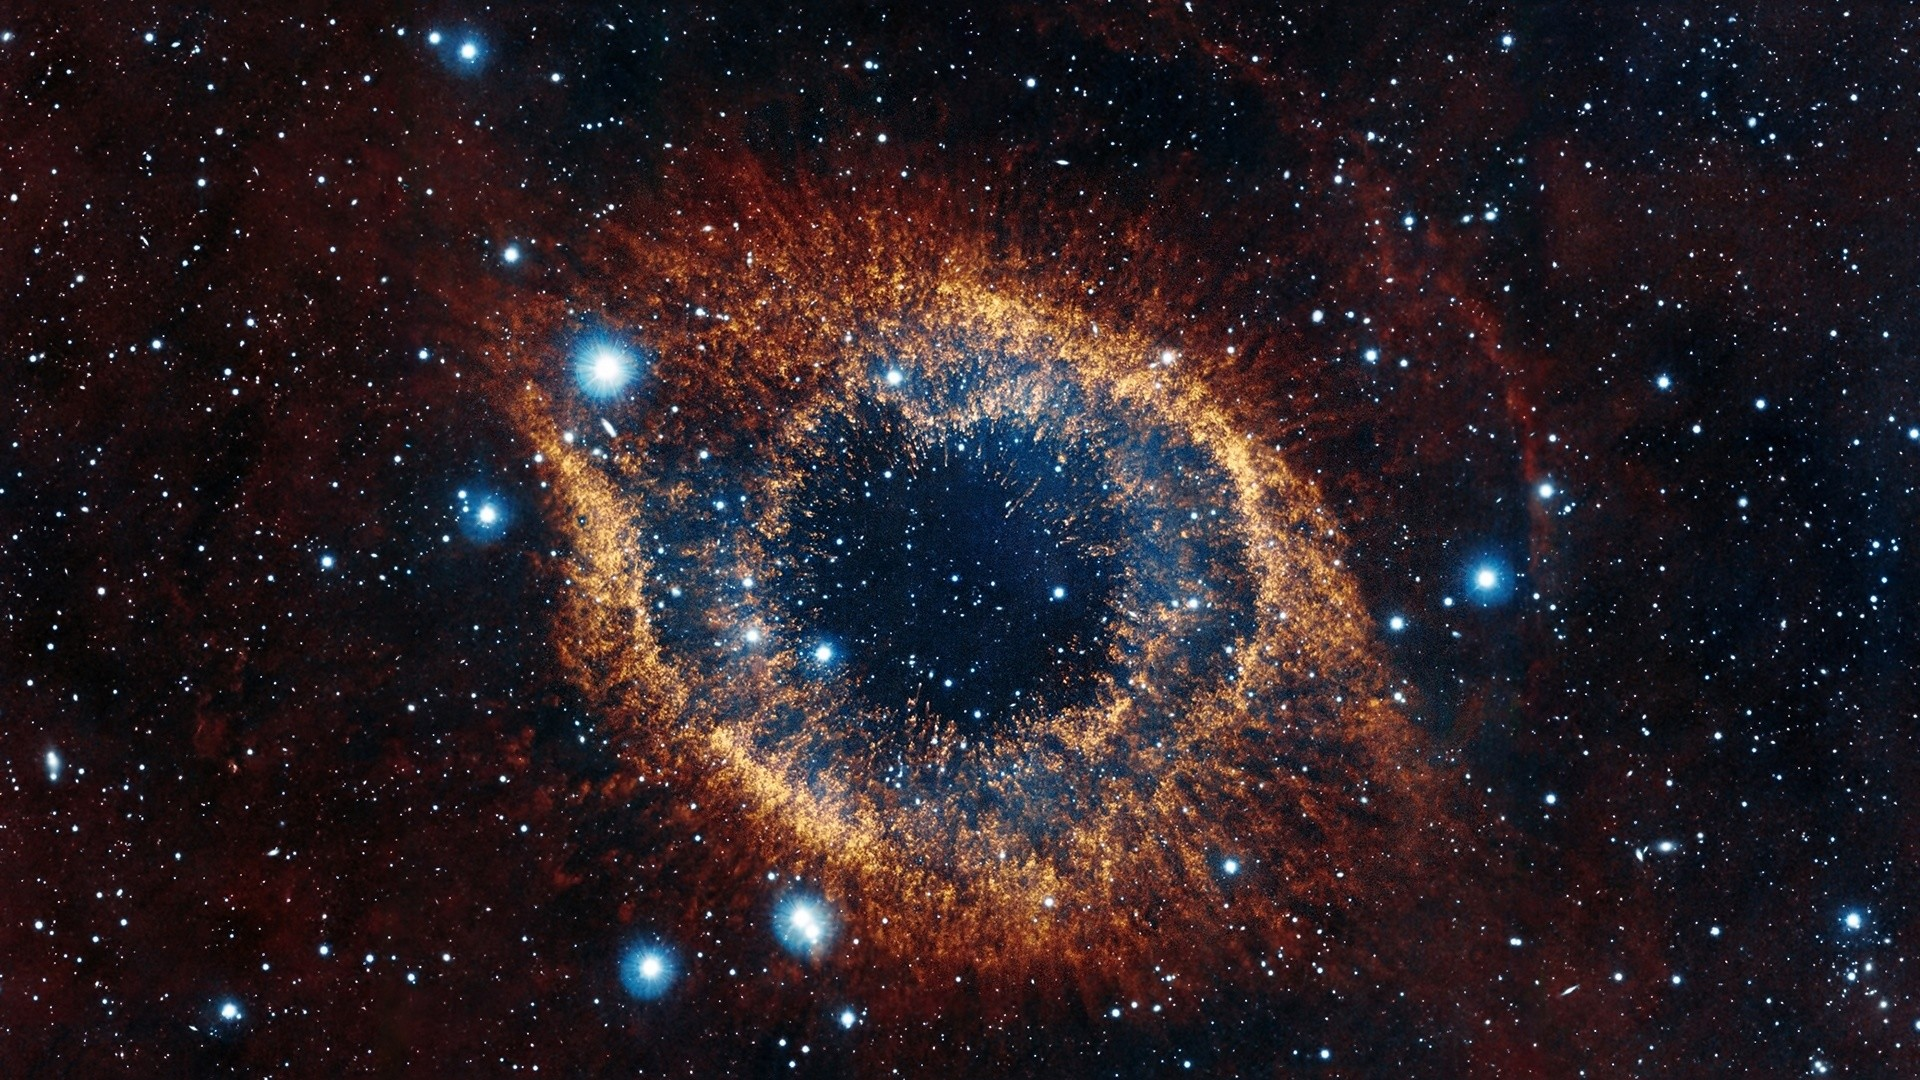 1920x1080  Wallpaper helix nebula, space, stars, explosion, brilliance